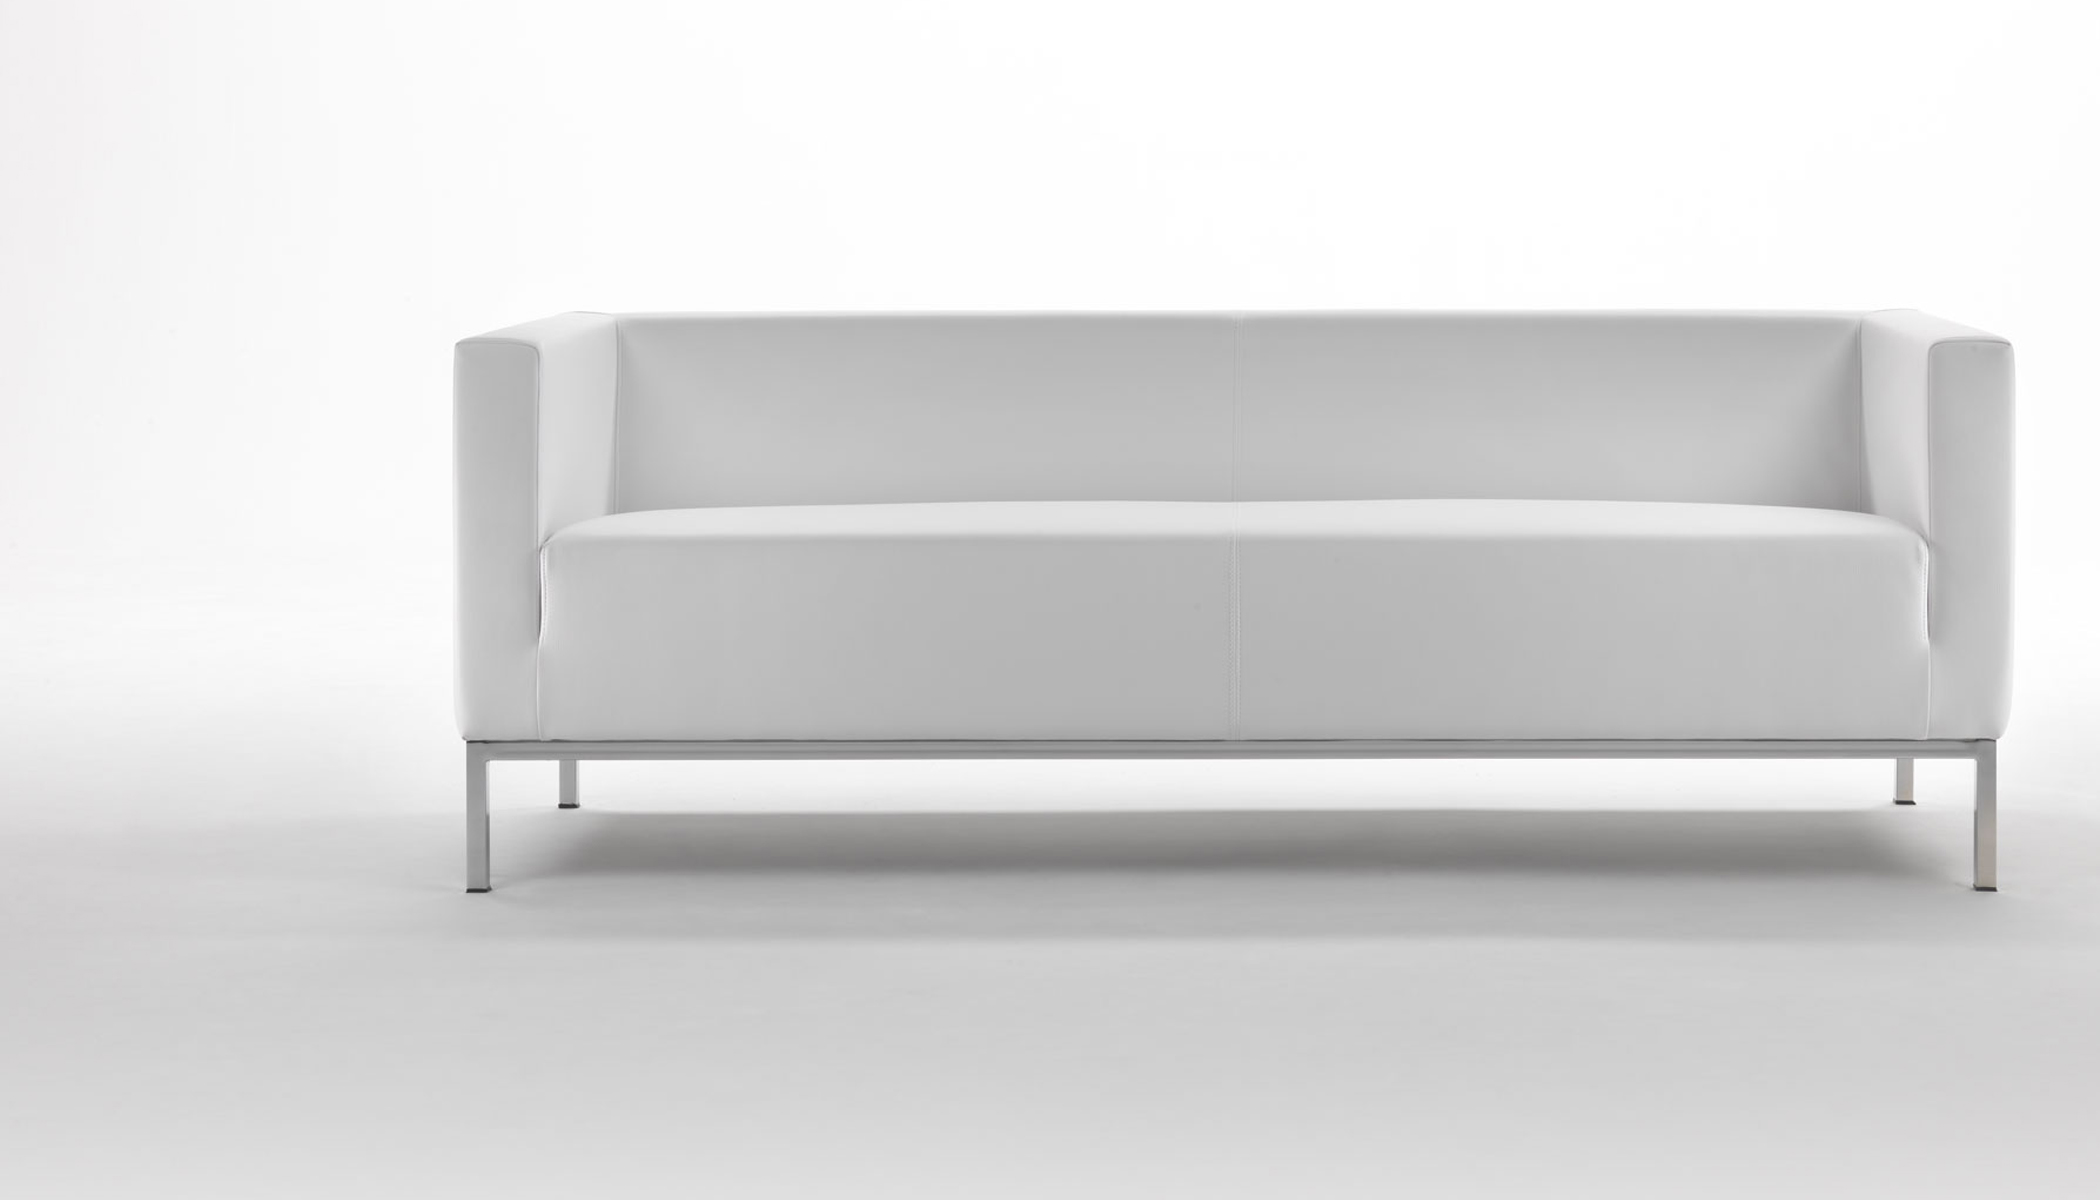 Tisch fr couch top affordable interesting gartenmbel for Couch mehrzahl